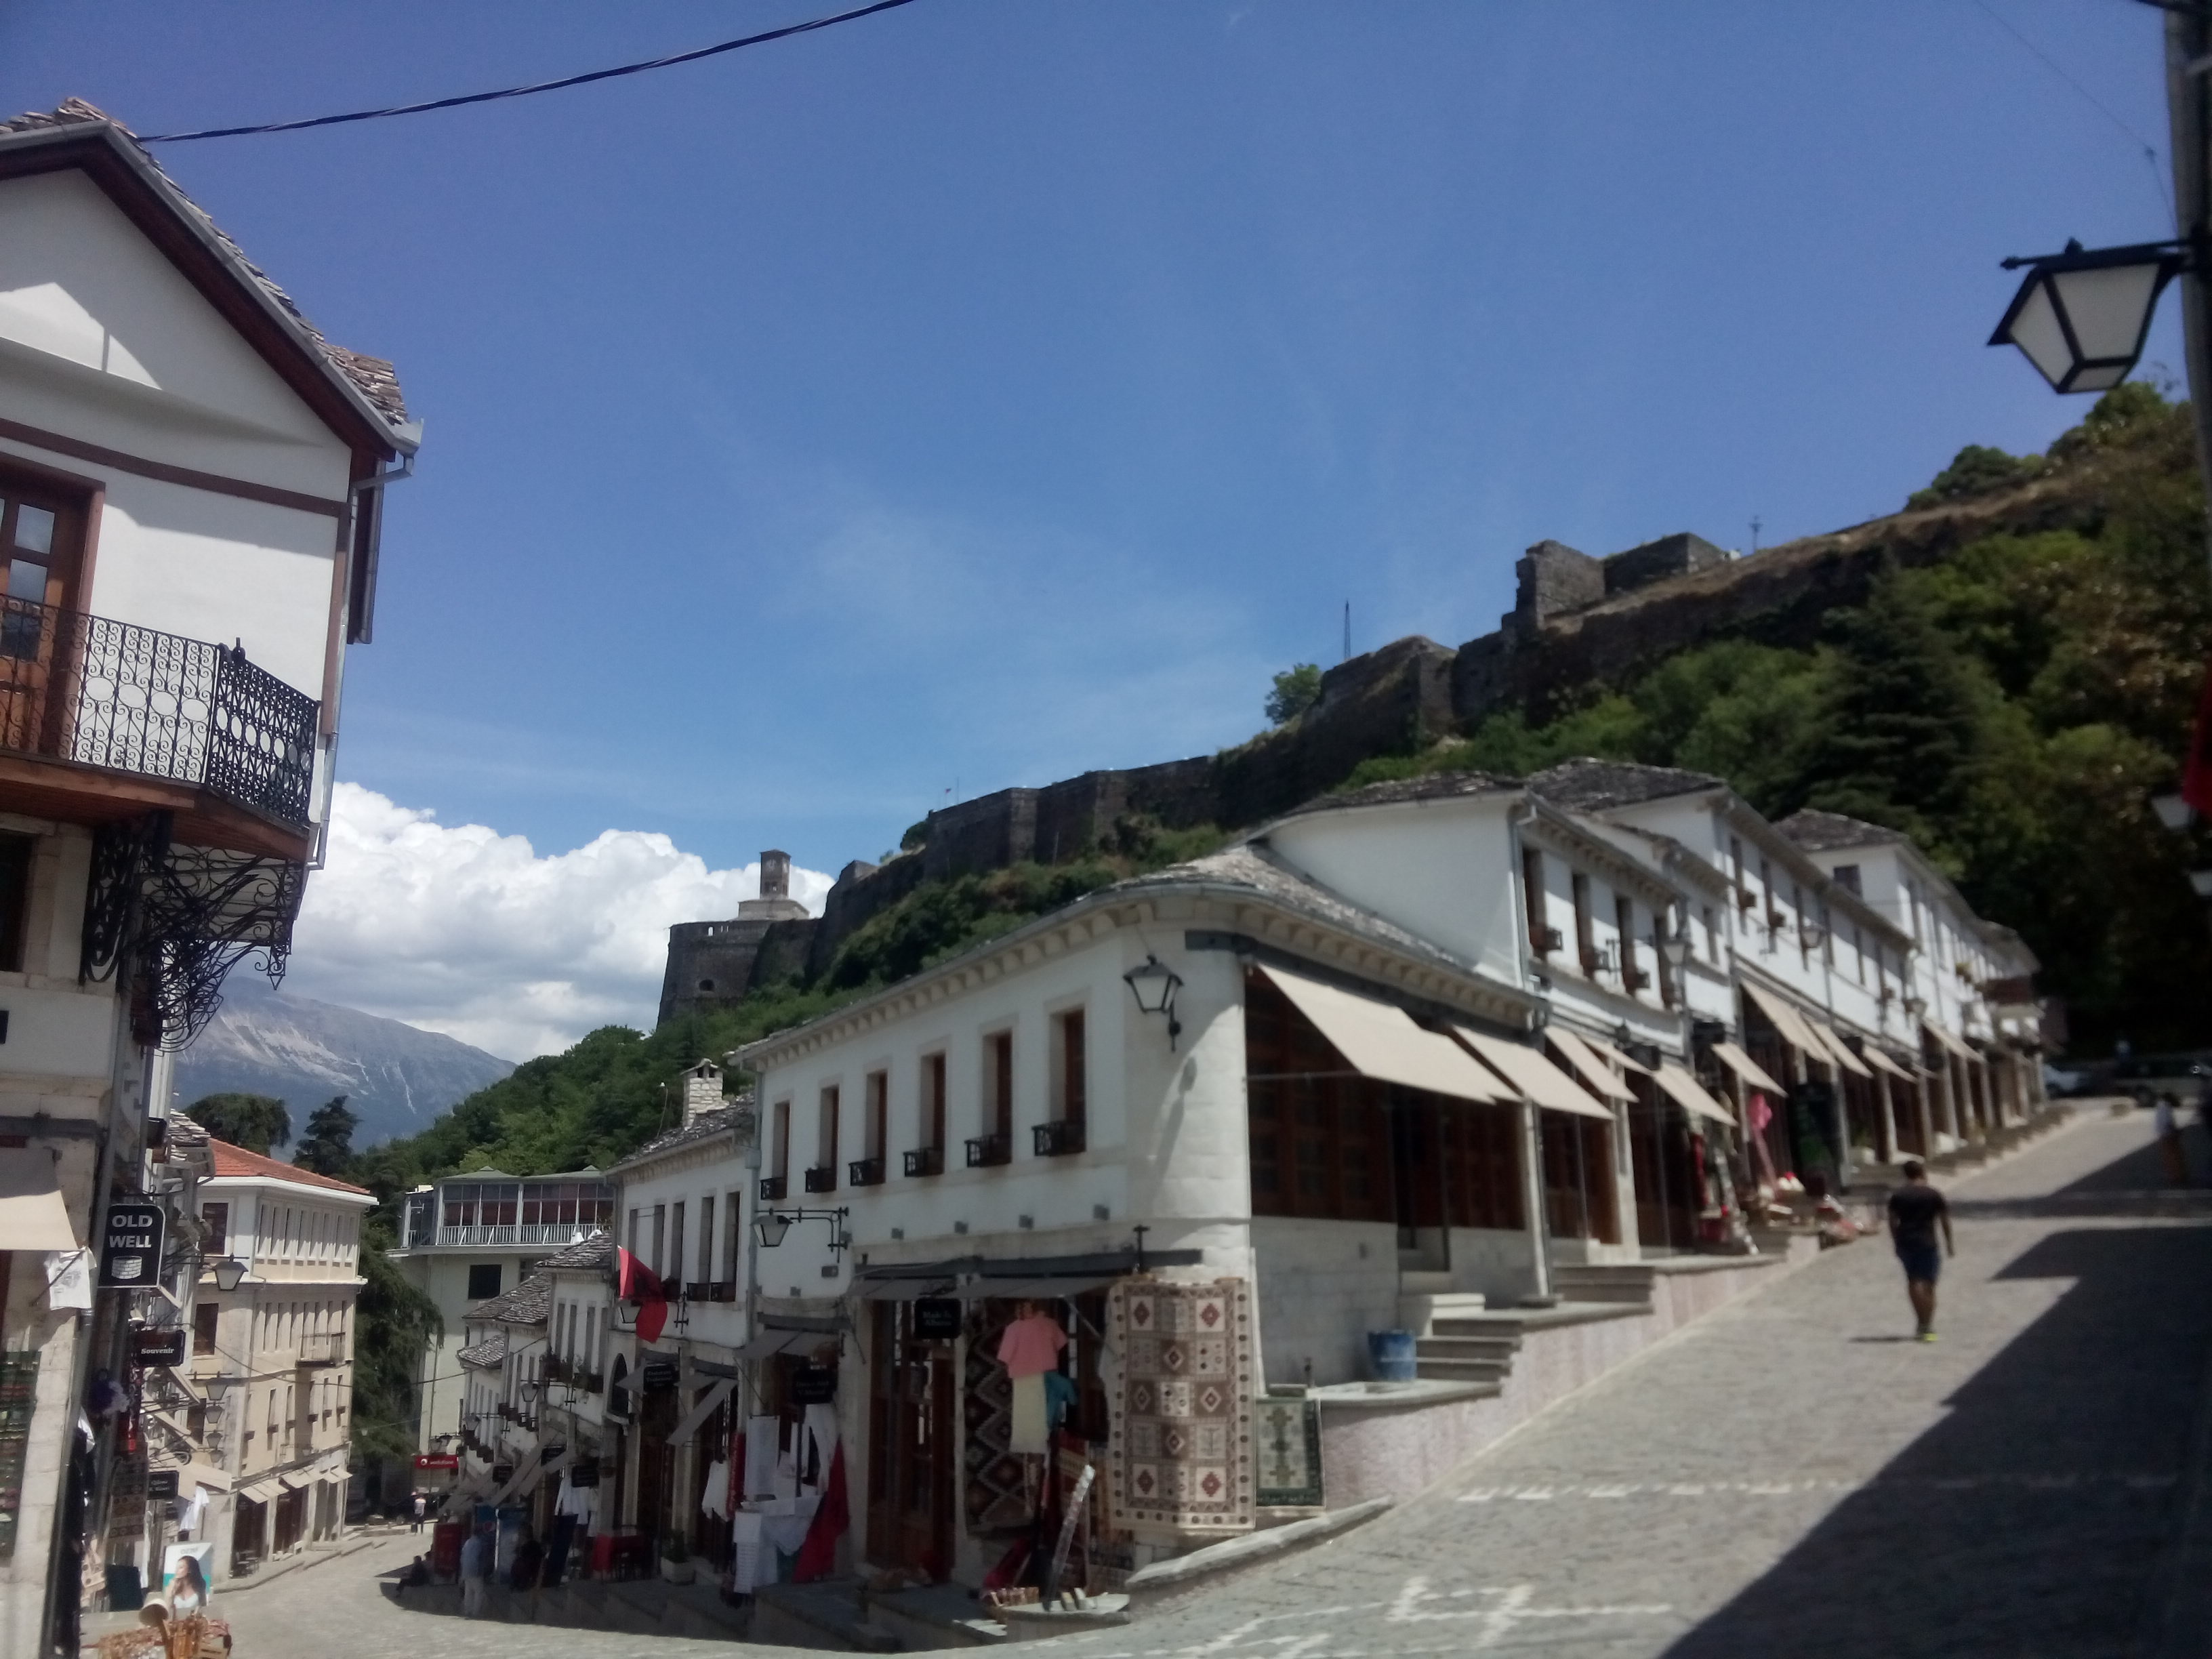 Sloping paved streets with white walls, open shop fronts, mountains in the background and a blue sky